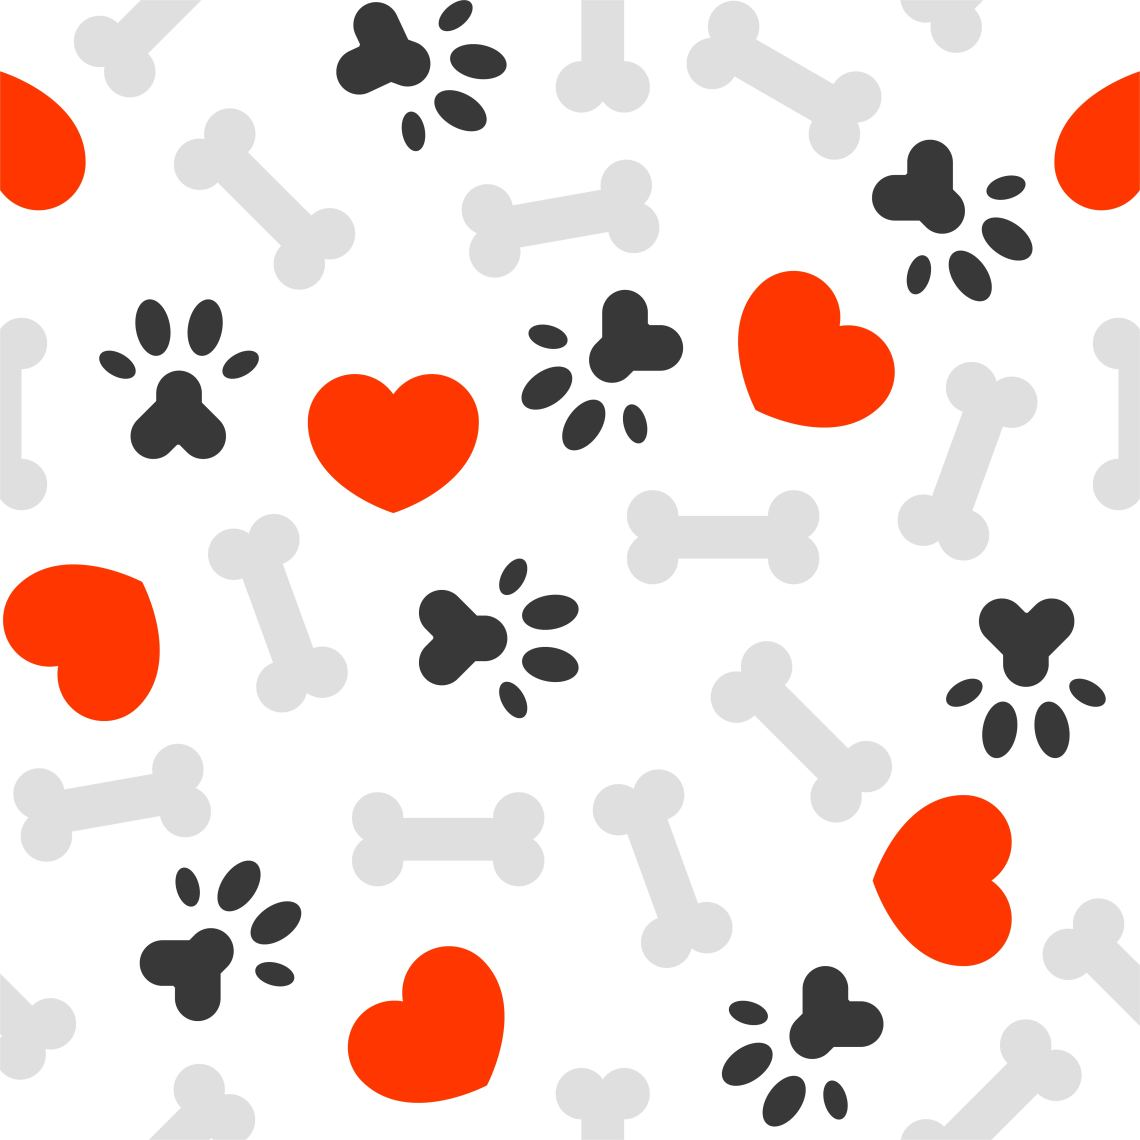 Download Paw Print Heart Free Vector Art - (39 Free Downloads)